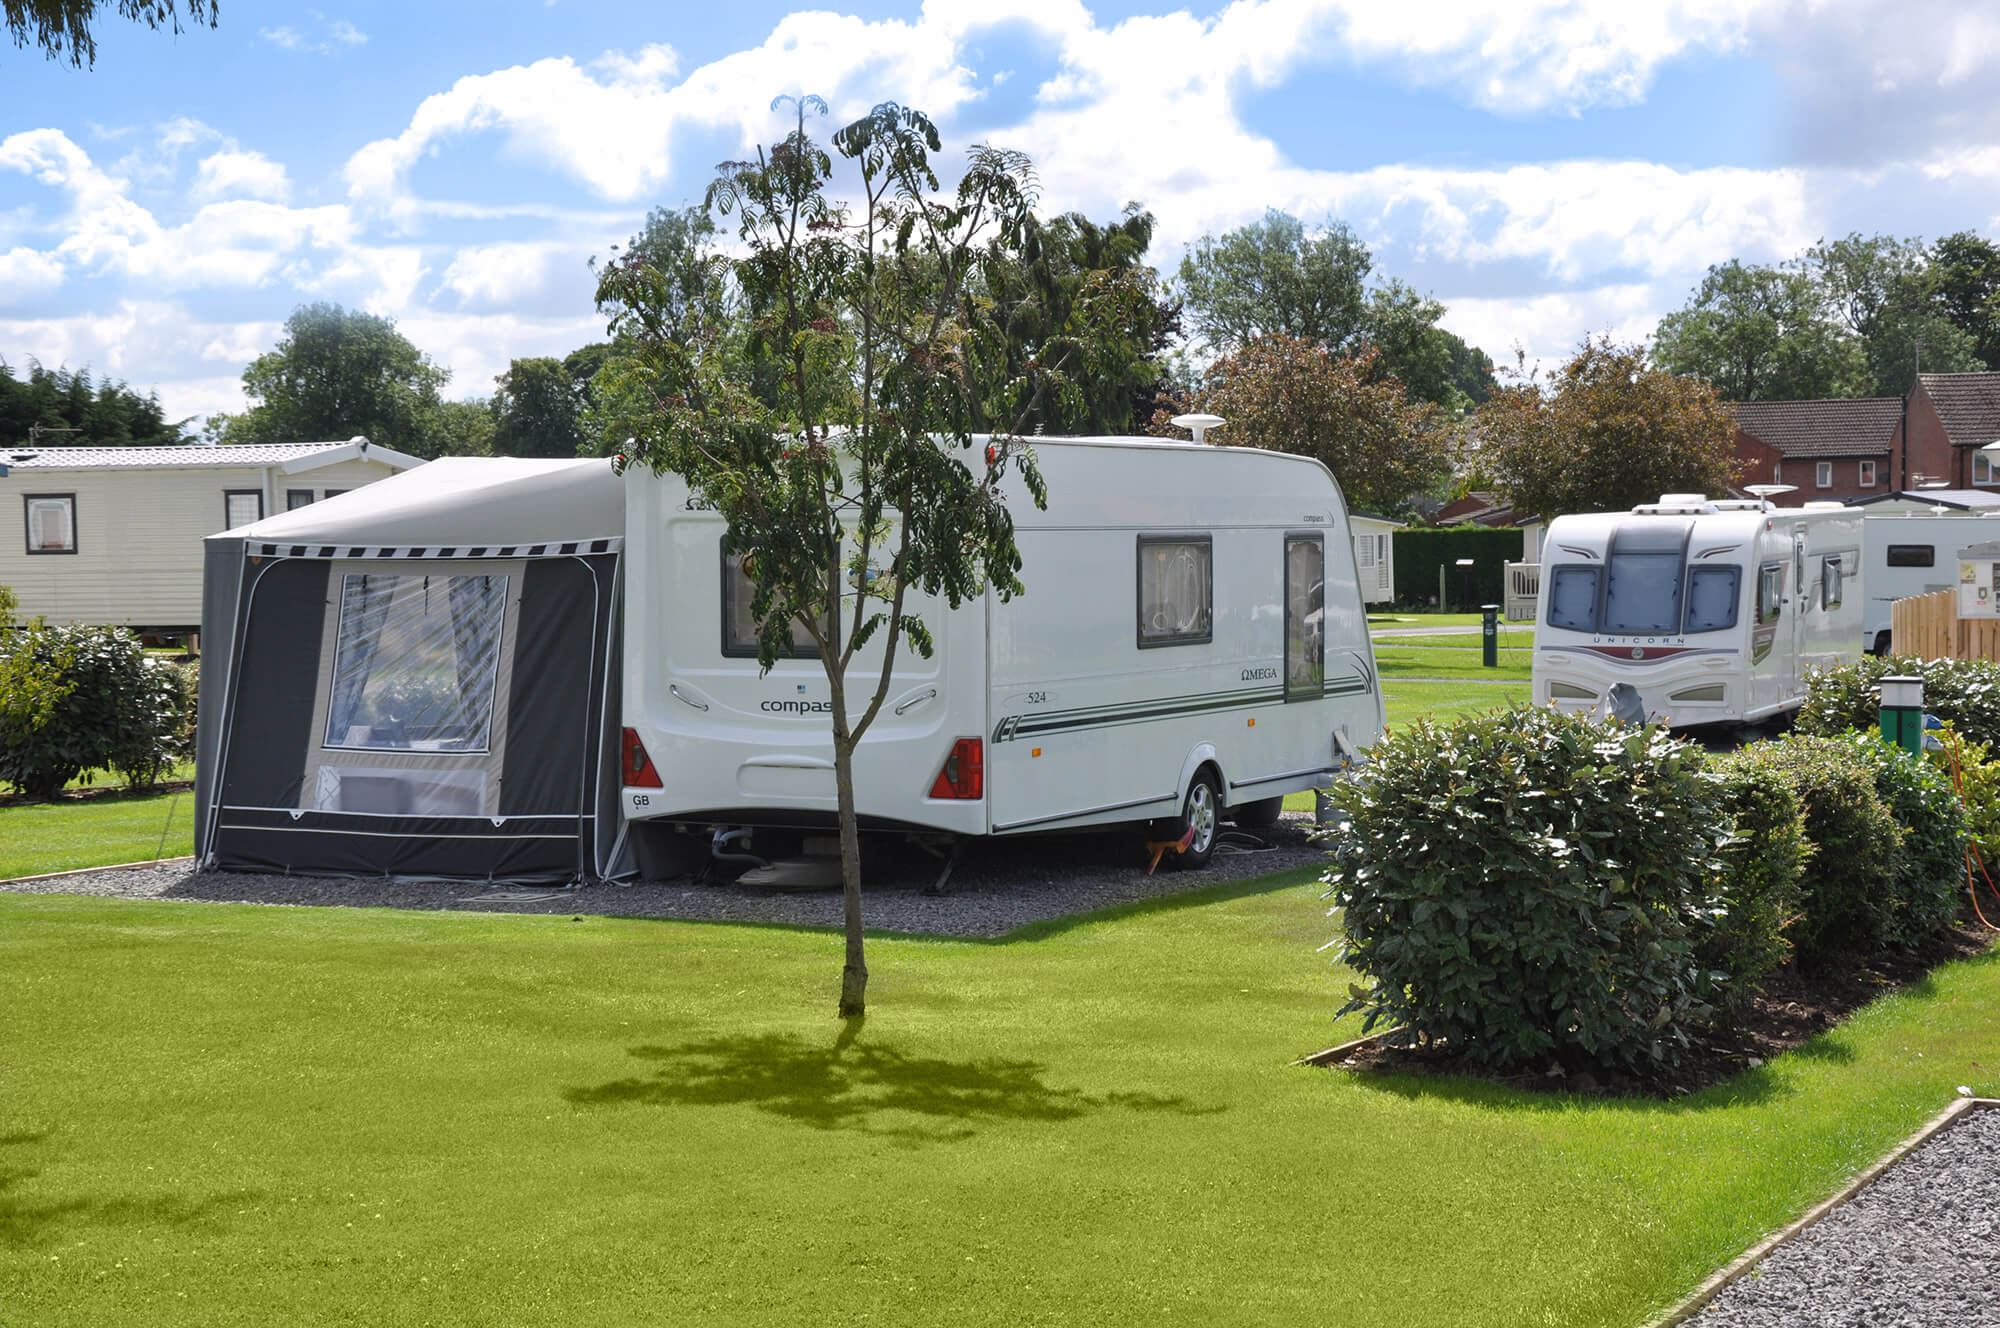 York House Holiday Park Hire Caravans